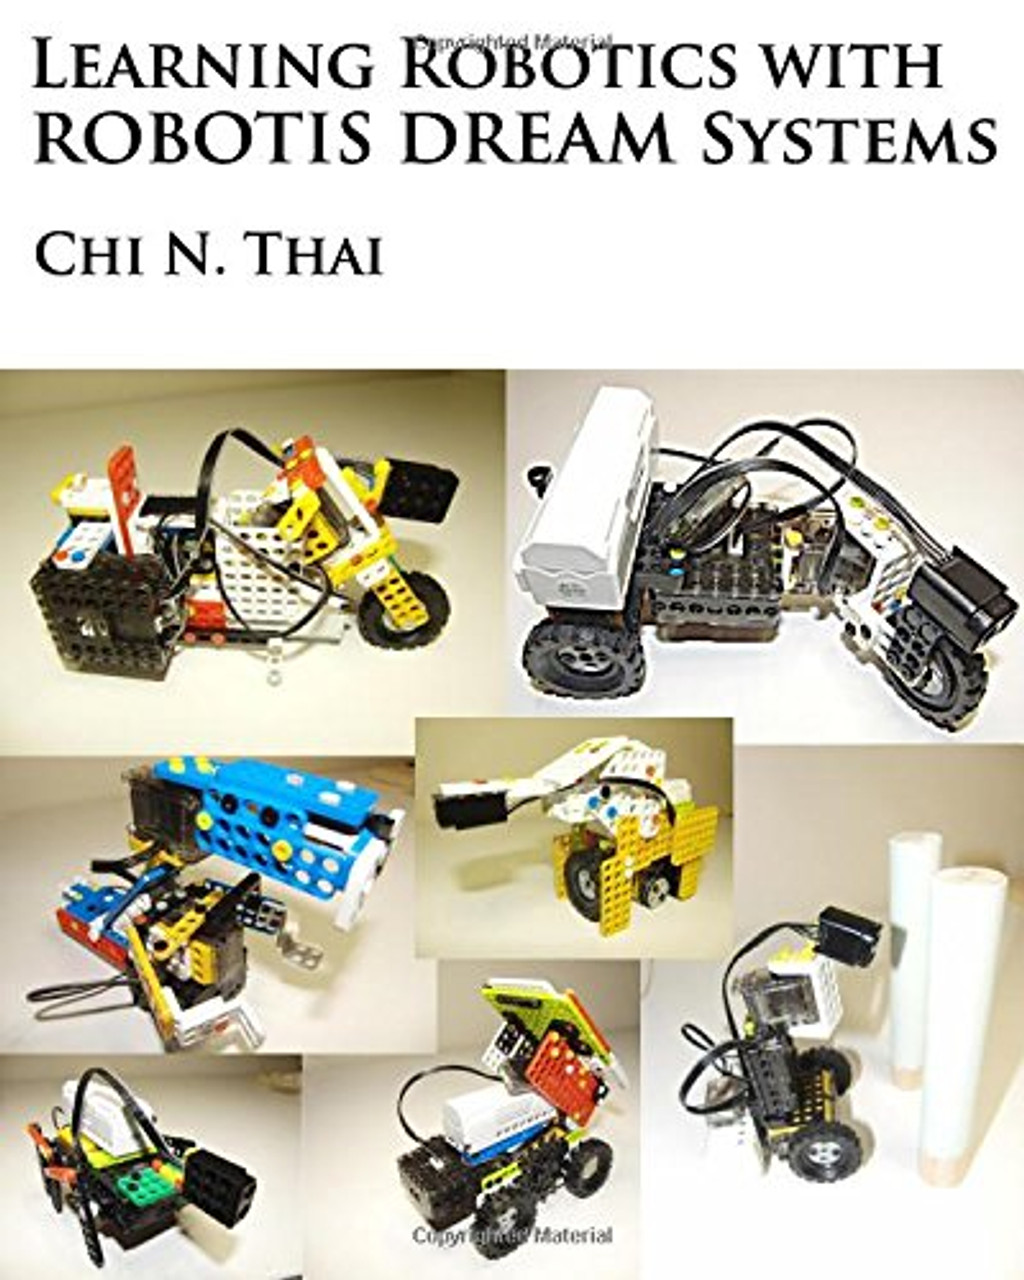 Learning Robotics with ROBOTIS DREAM Systems